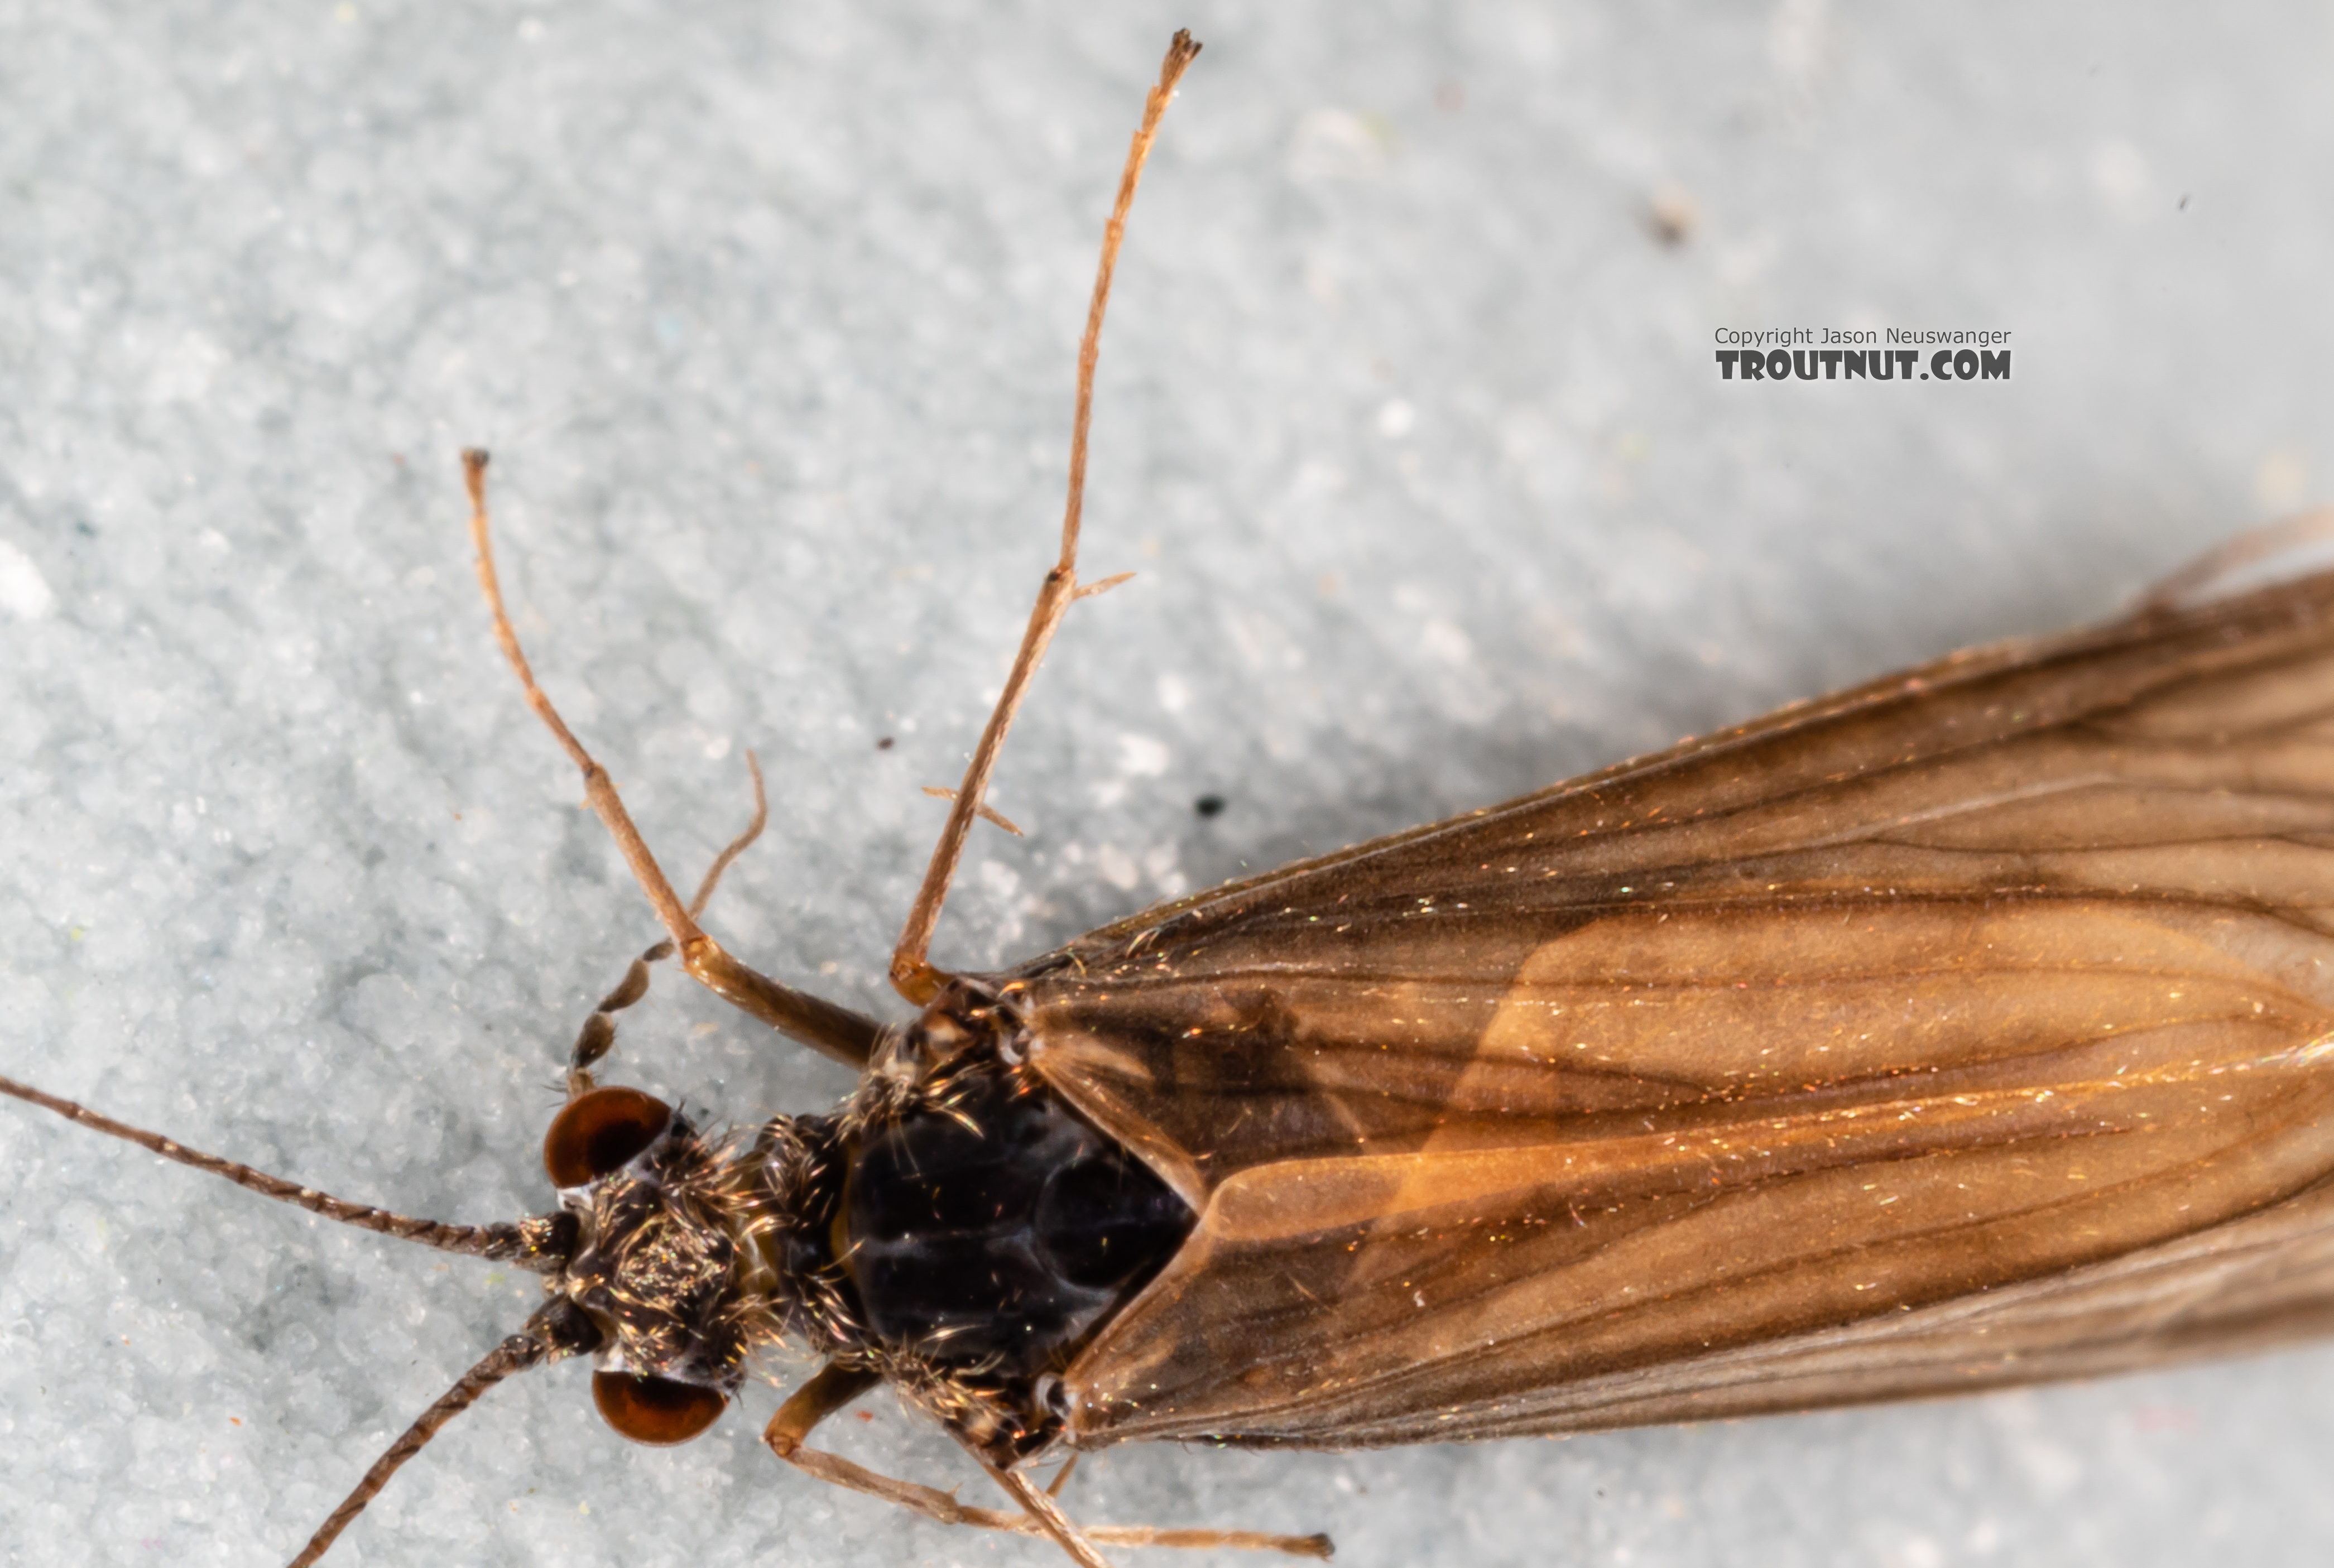 Male Trichoptera (Caddisflies) Caddisfly Adult from the Madison River in Montana